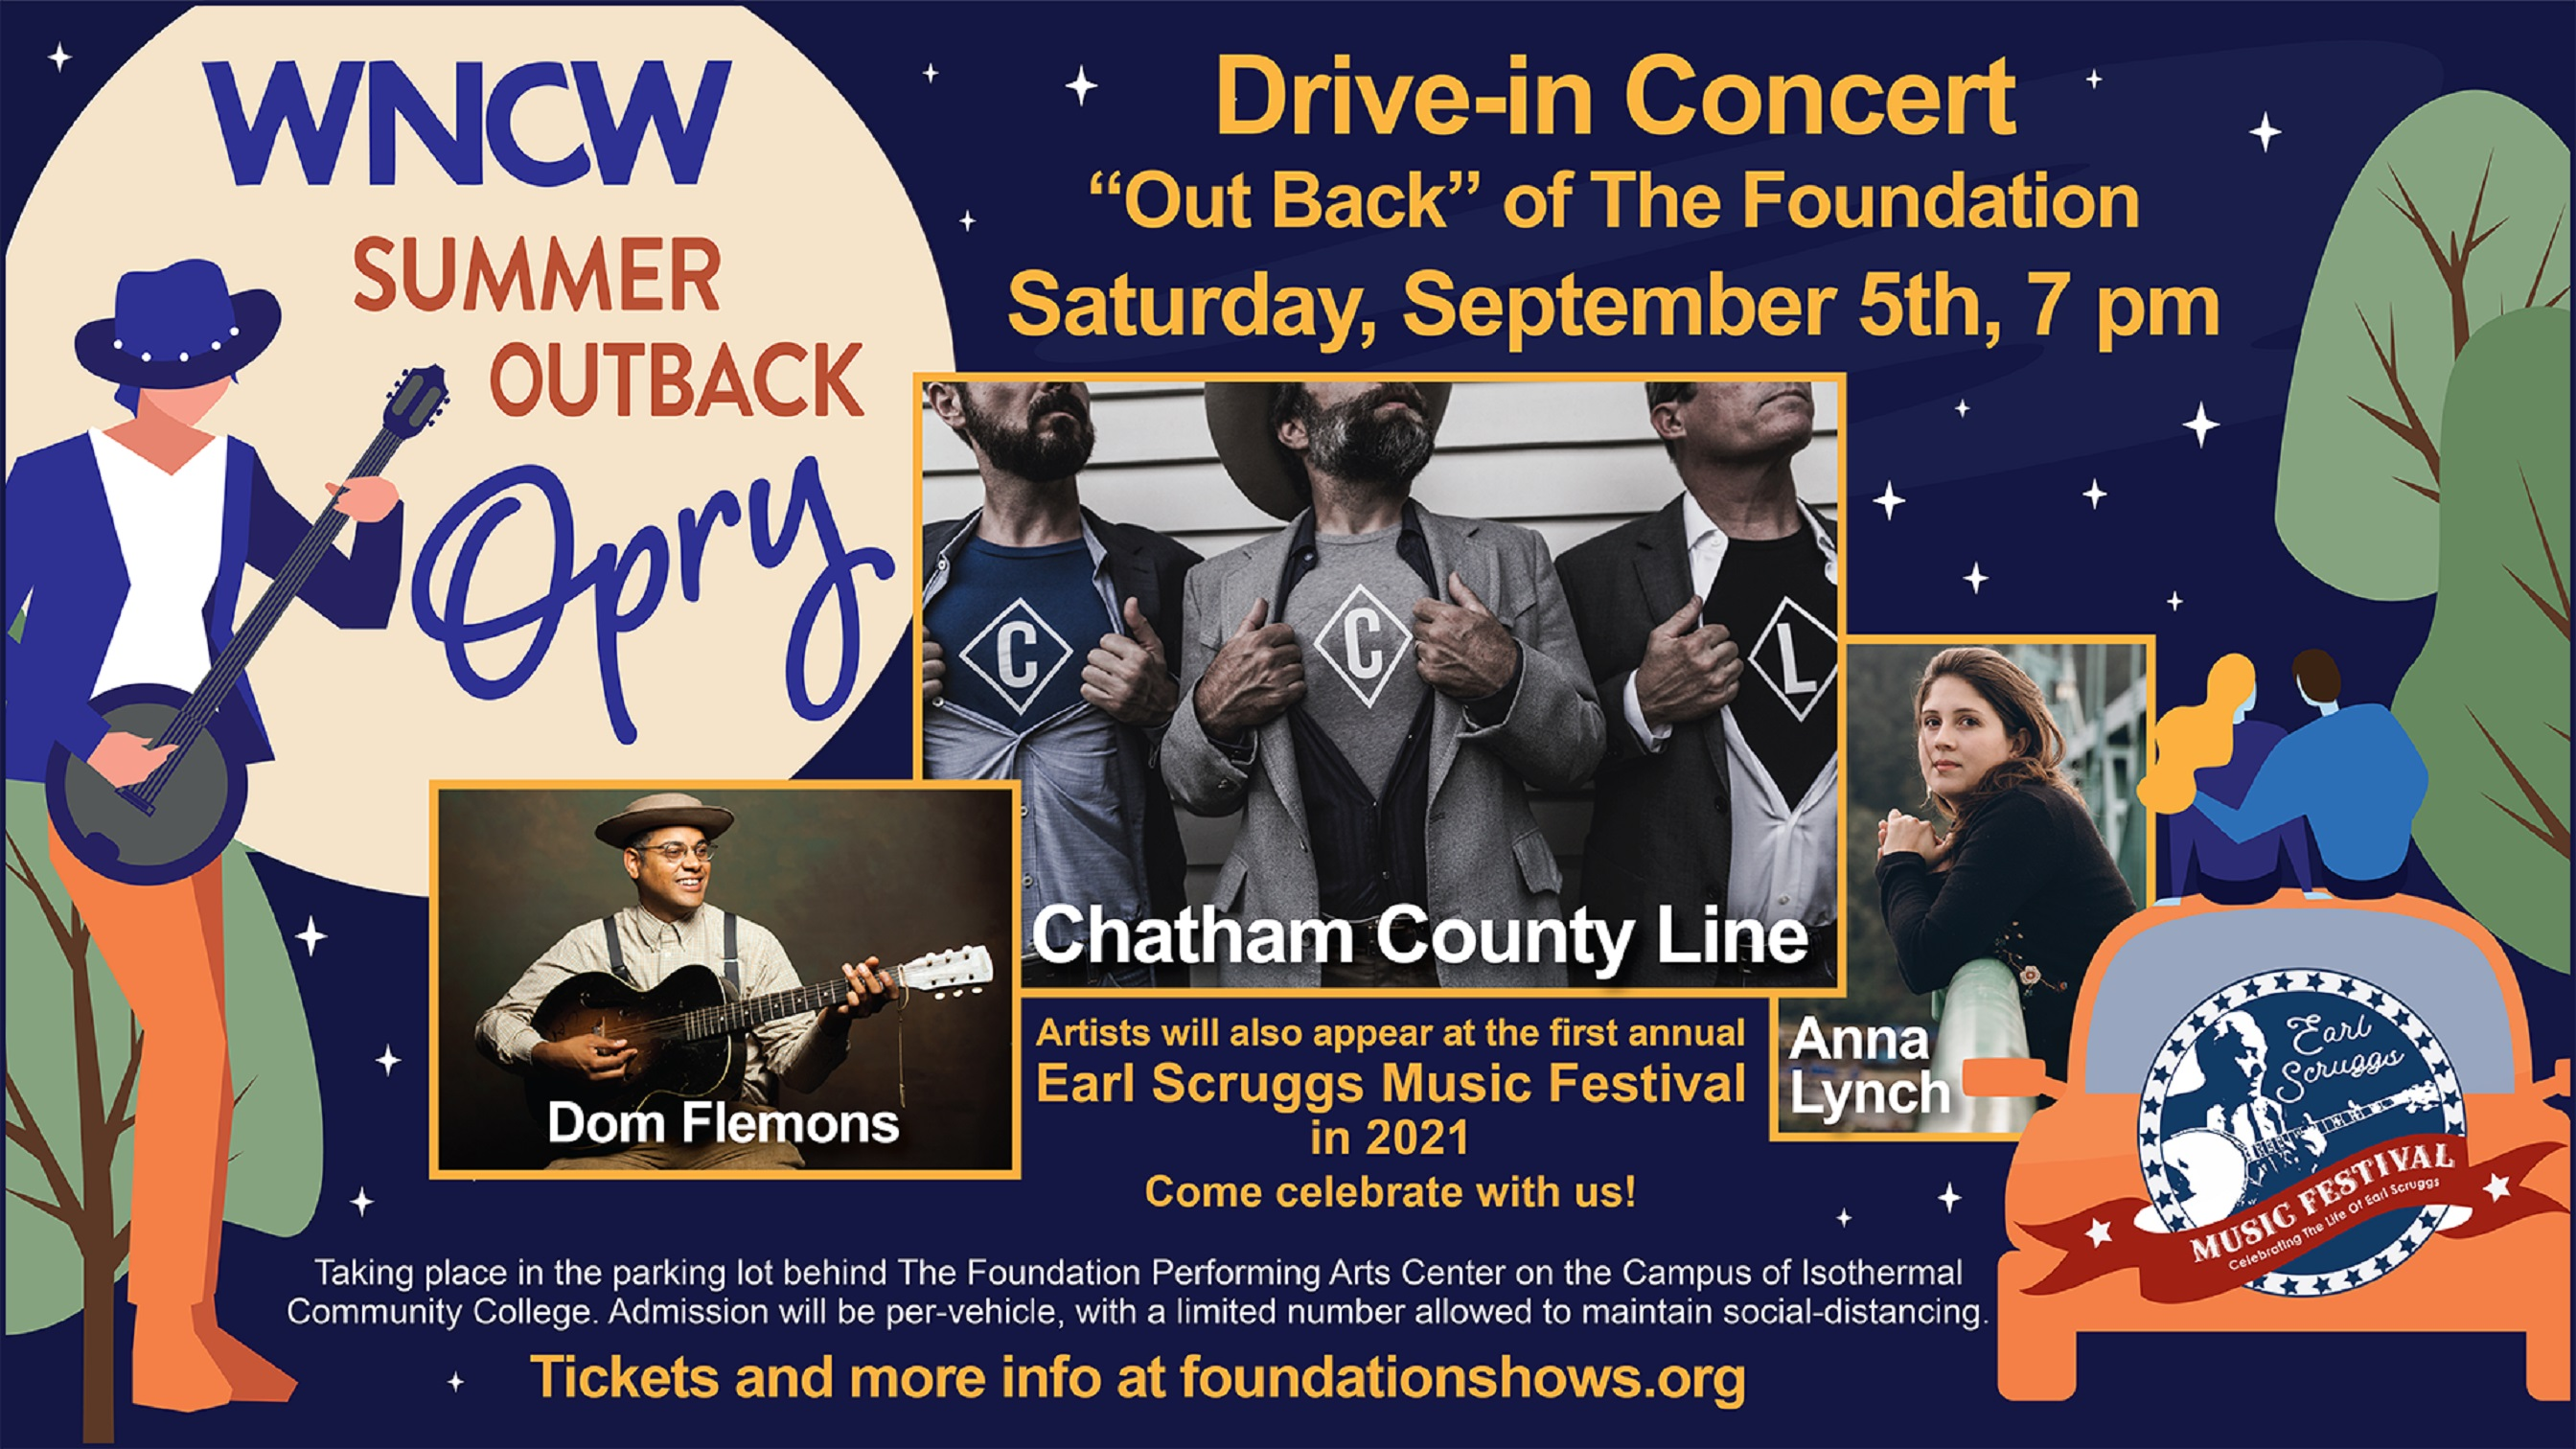 Earl Scruggs Music Festival showcase on September 5 in Spindale, NC